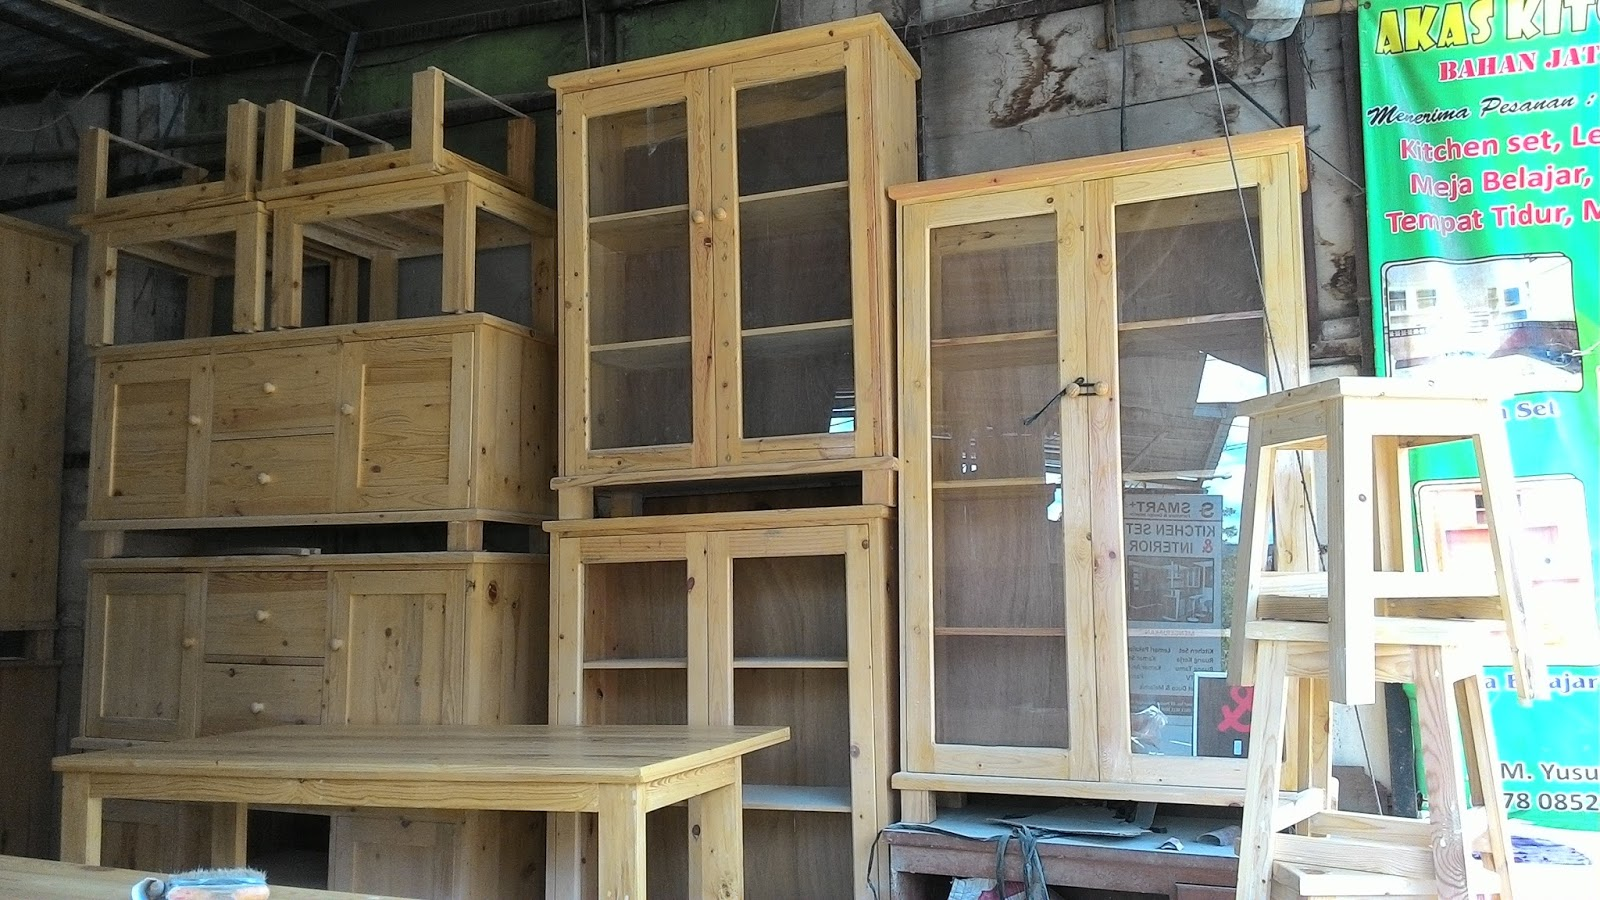 Furniture Kayu Jati Belanda Akas Kitchen Set Di Depok